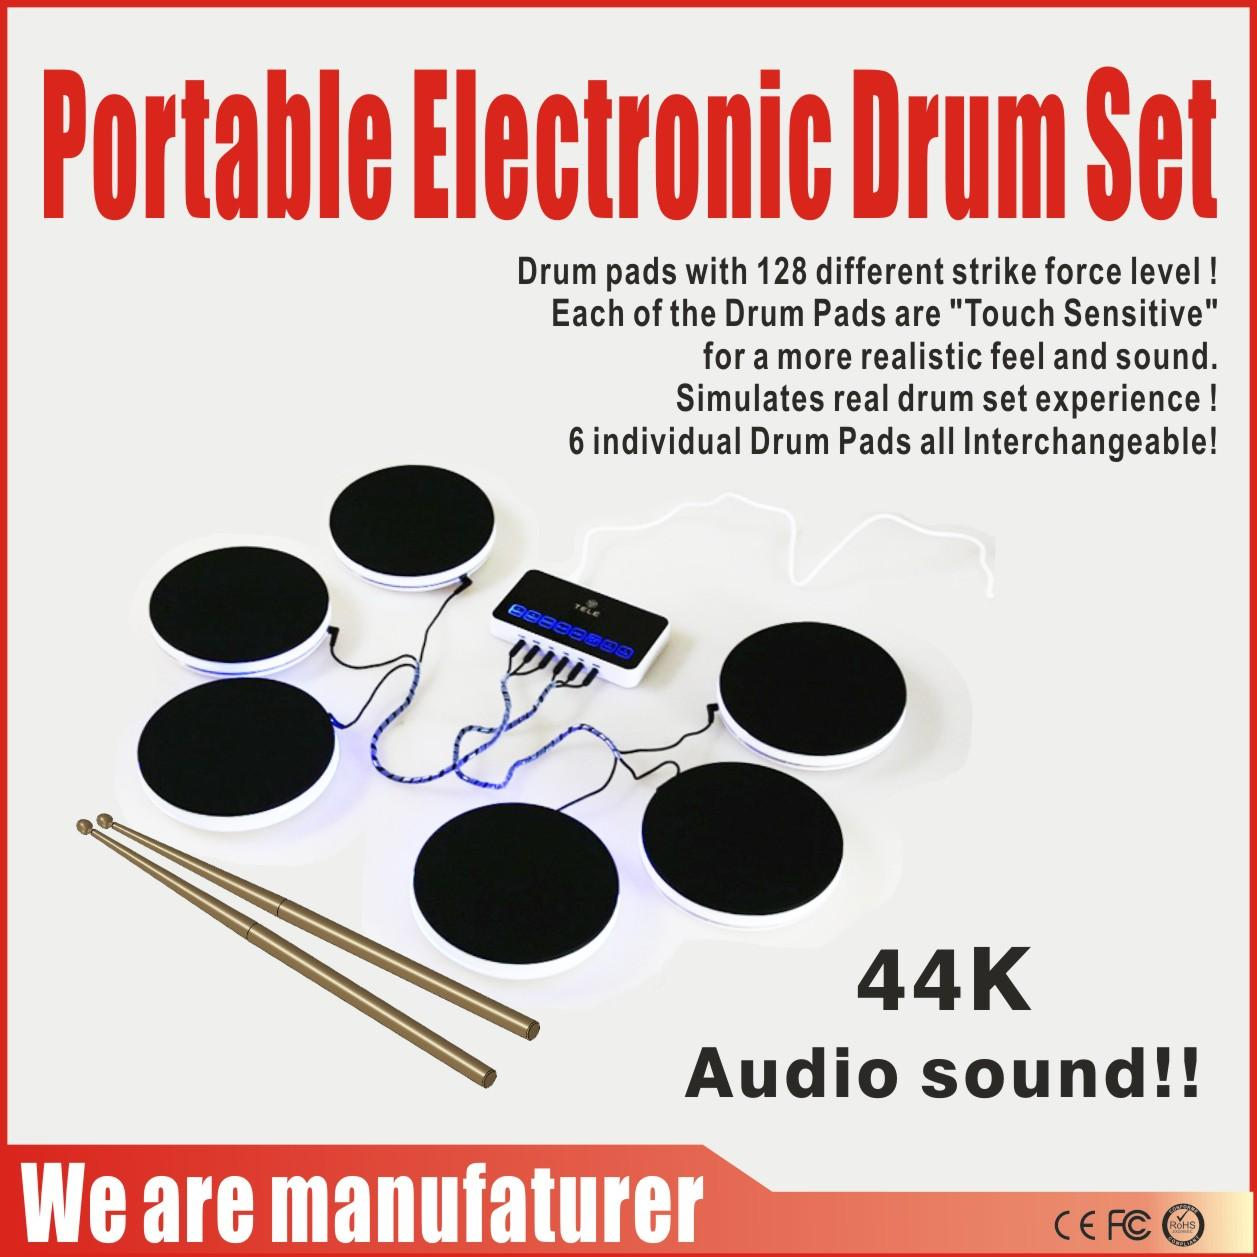 Games & Accessories Game Toys Portable Game Players Electronic Drum Set Musical Instruments Percussion 44K Audio sound Six Drum Pads